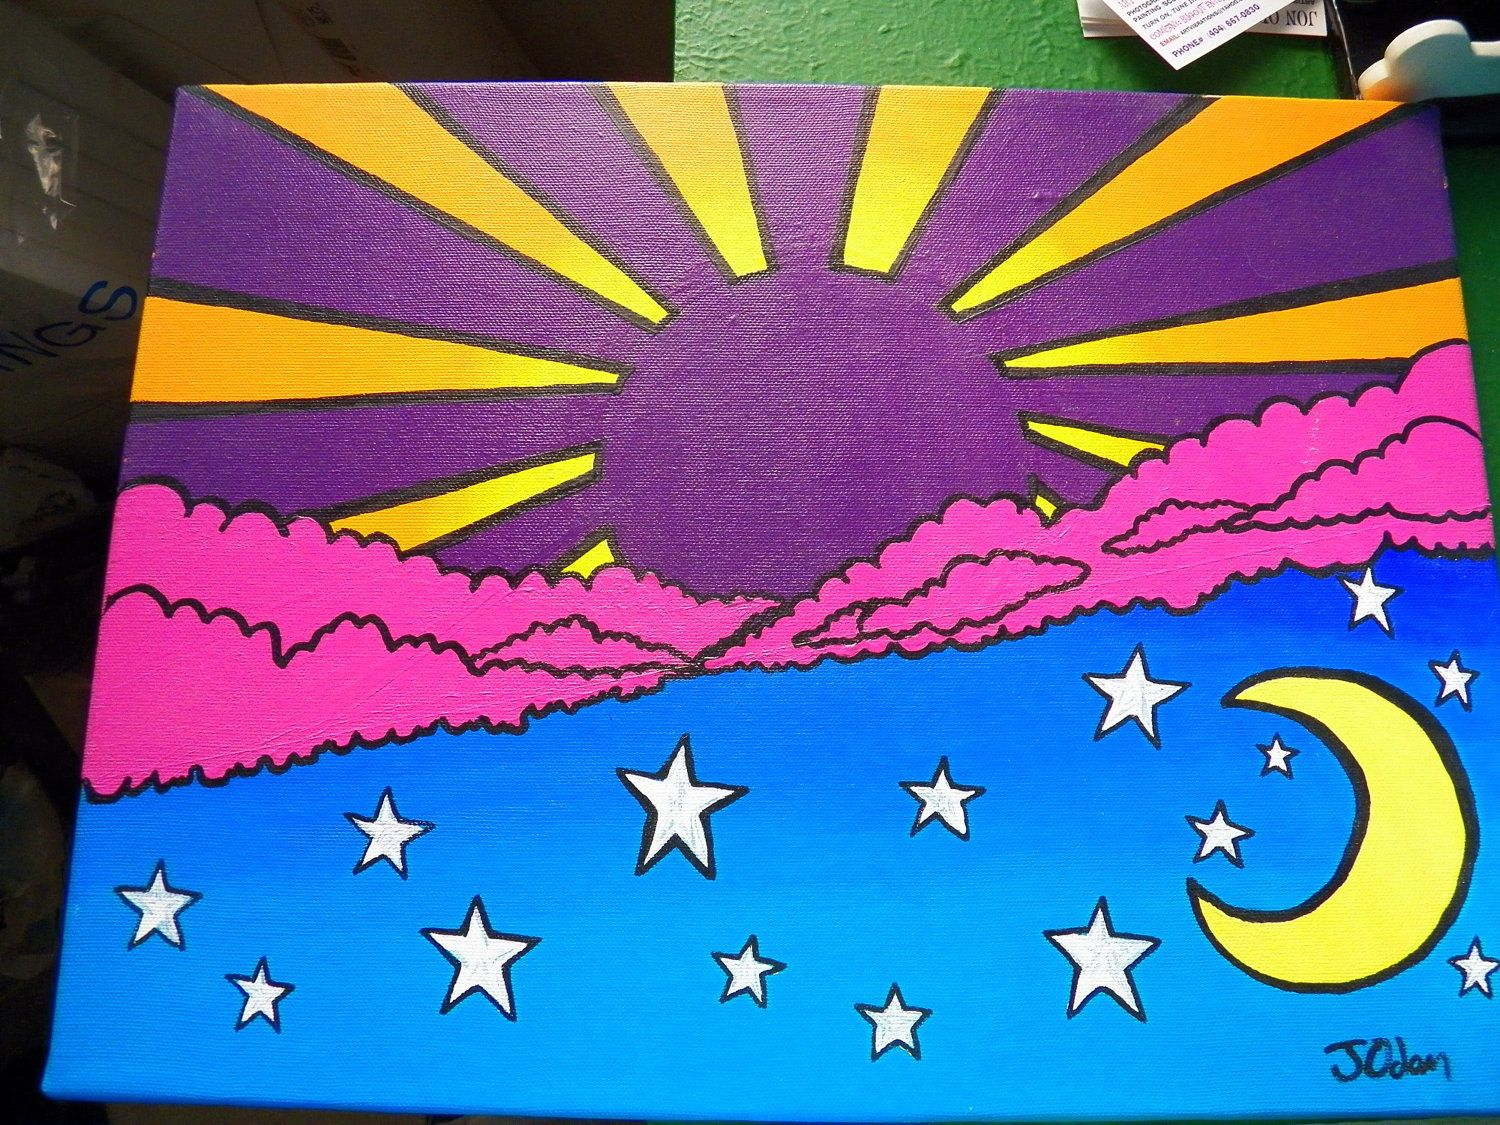 Psychedelic pop art trippy like peter max via for Art sites like etsy